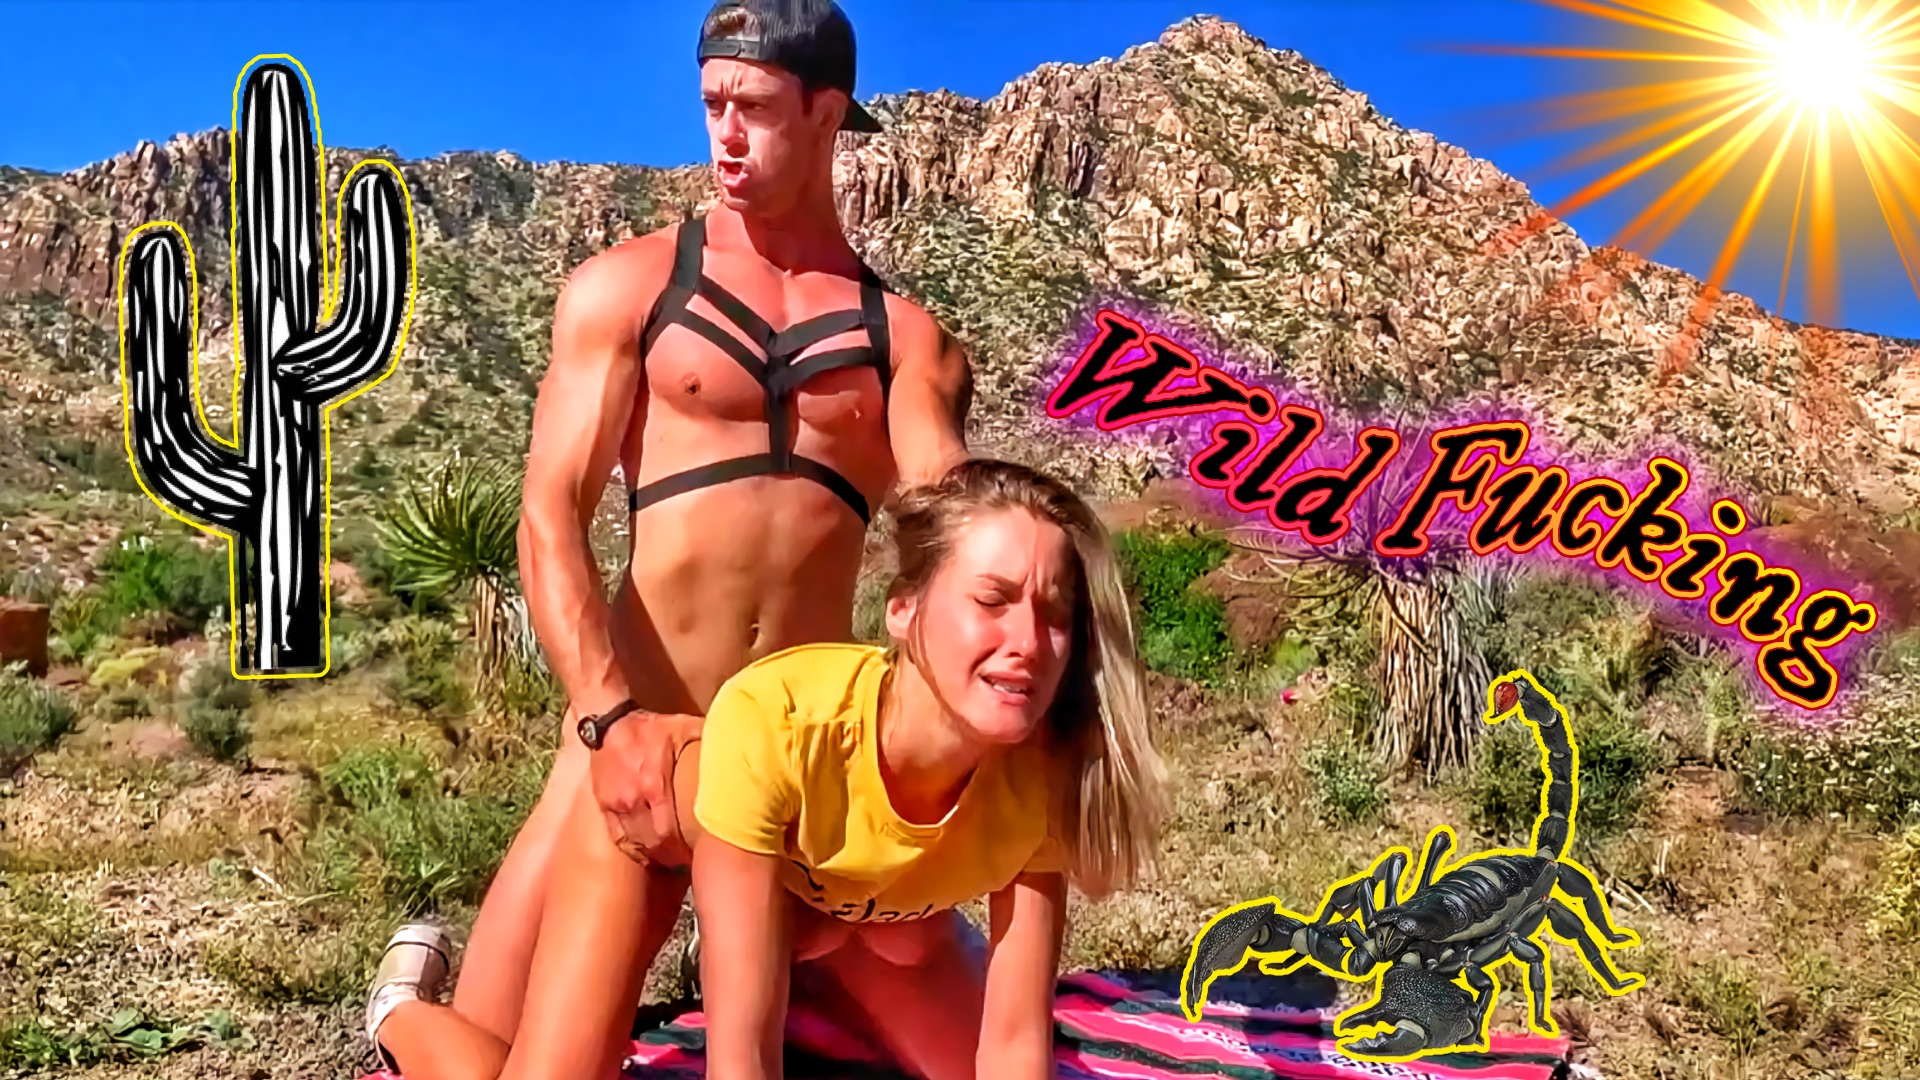 Hiking and Fucking in Thongs